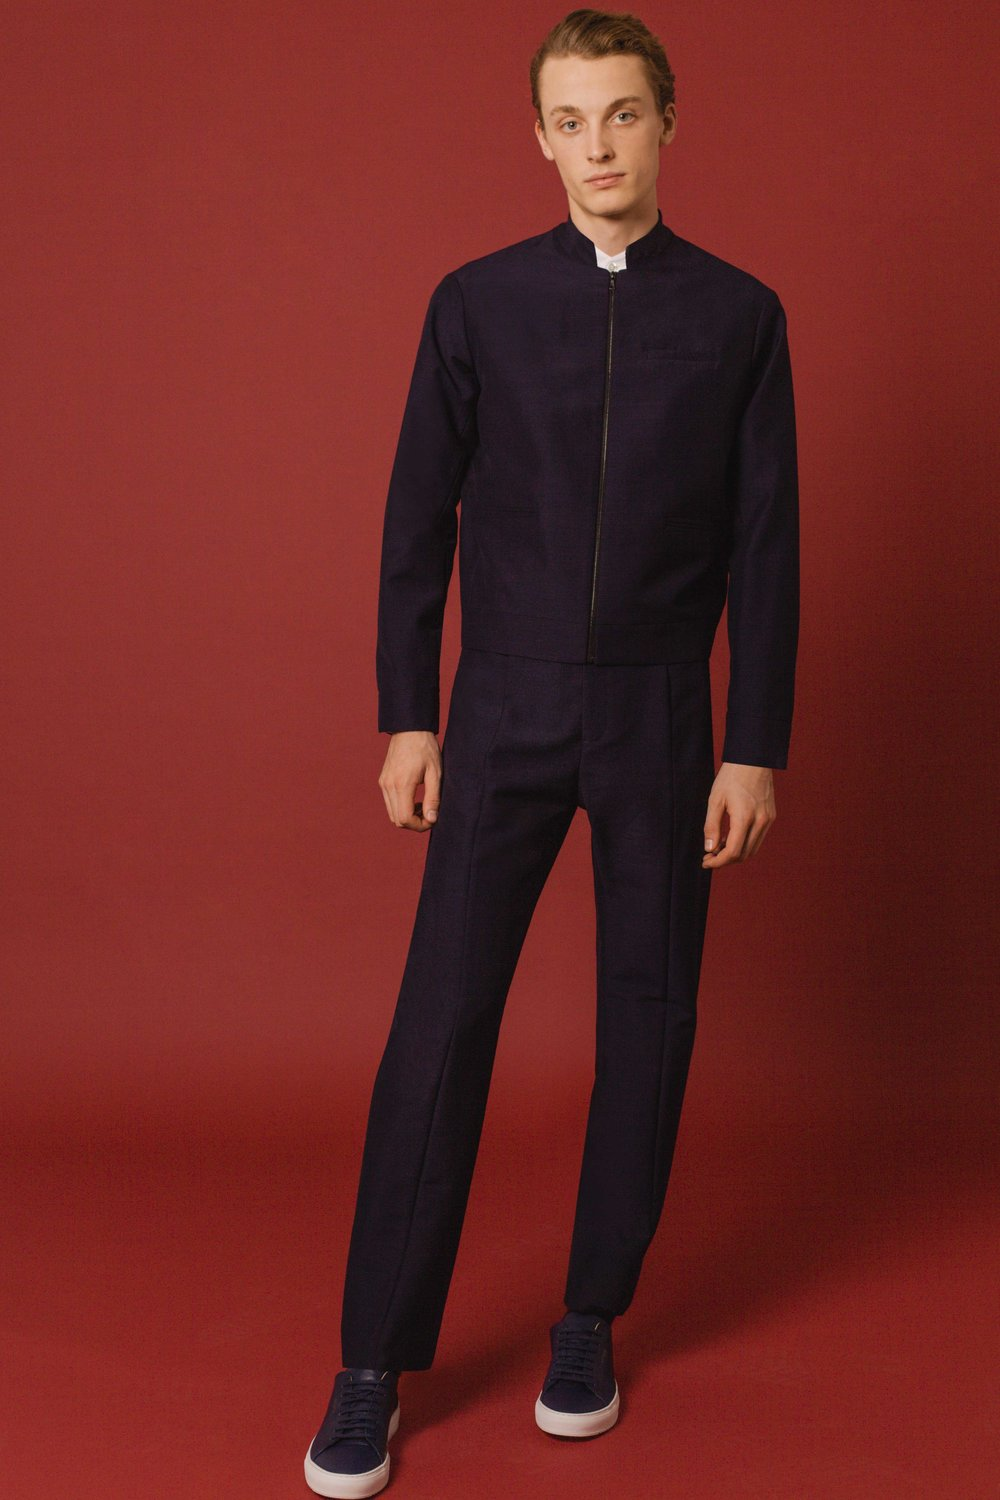 Blouson bomber navy mohair Jodhpur trousers navy mohair Made in England